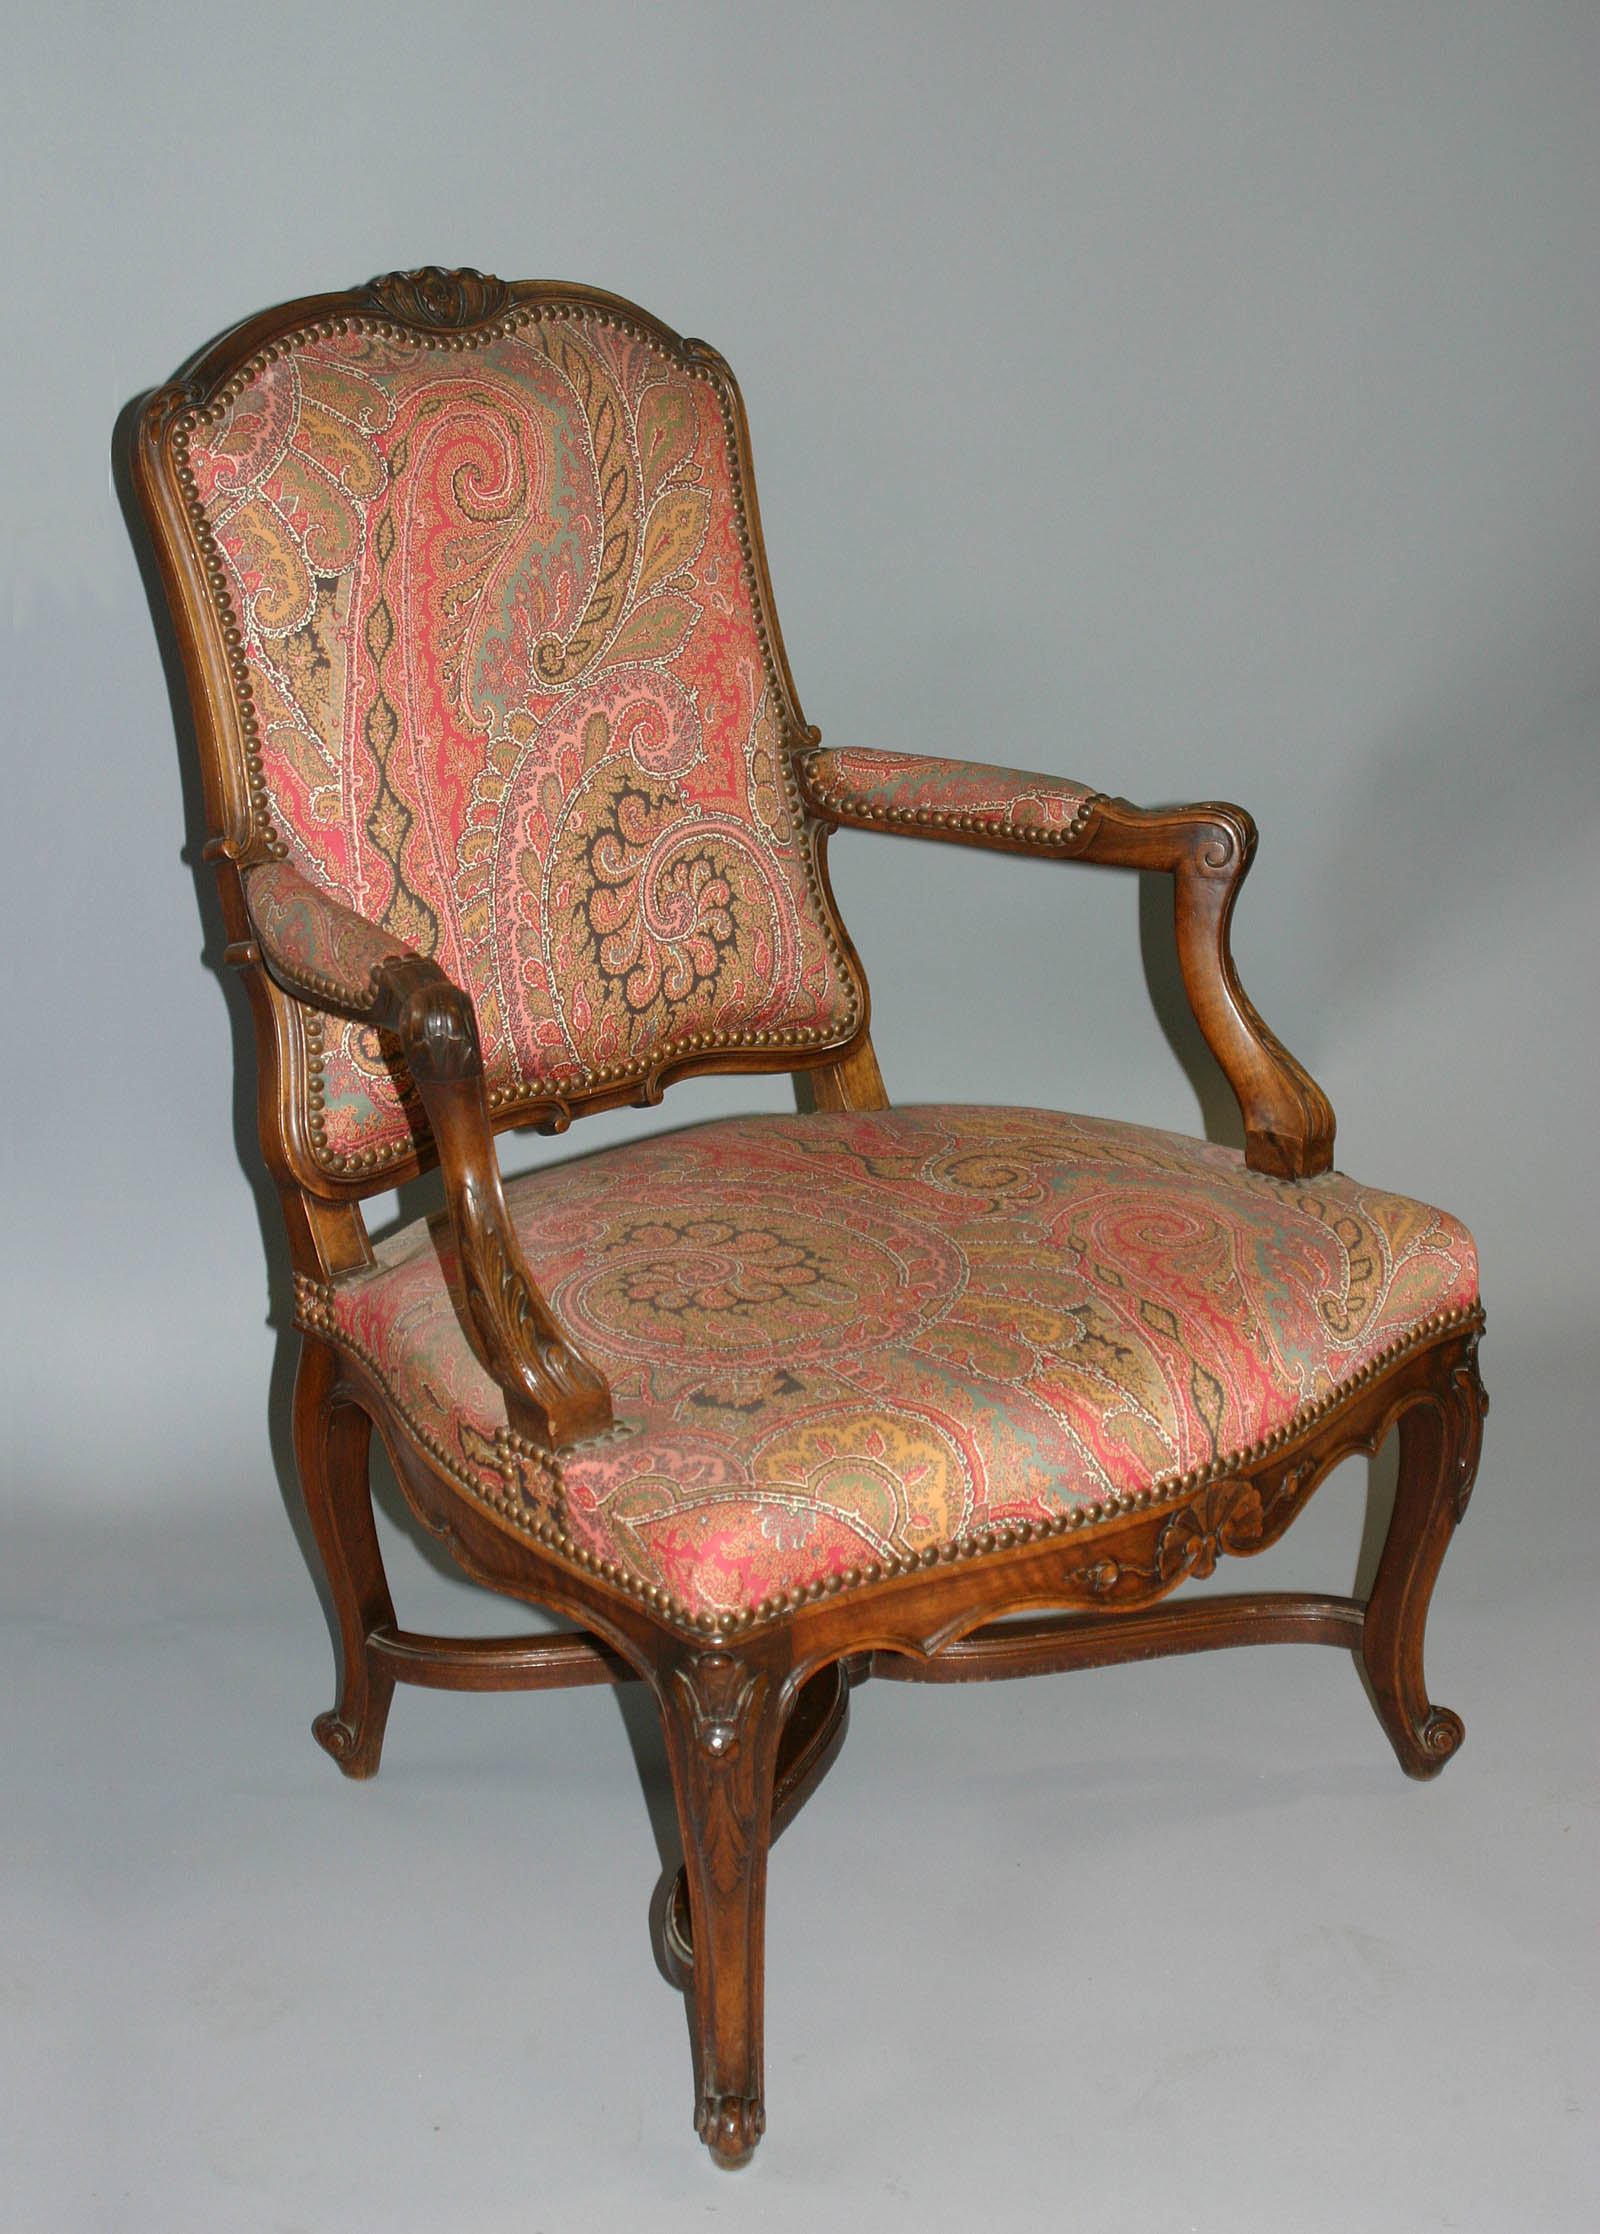 Pair of fine, French, Provençal, Louis XV style fauteuils